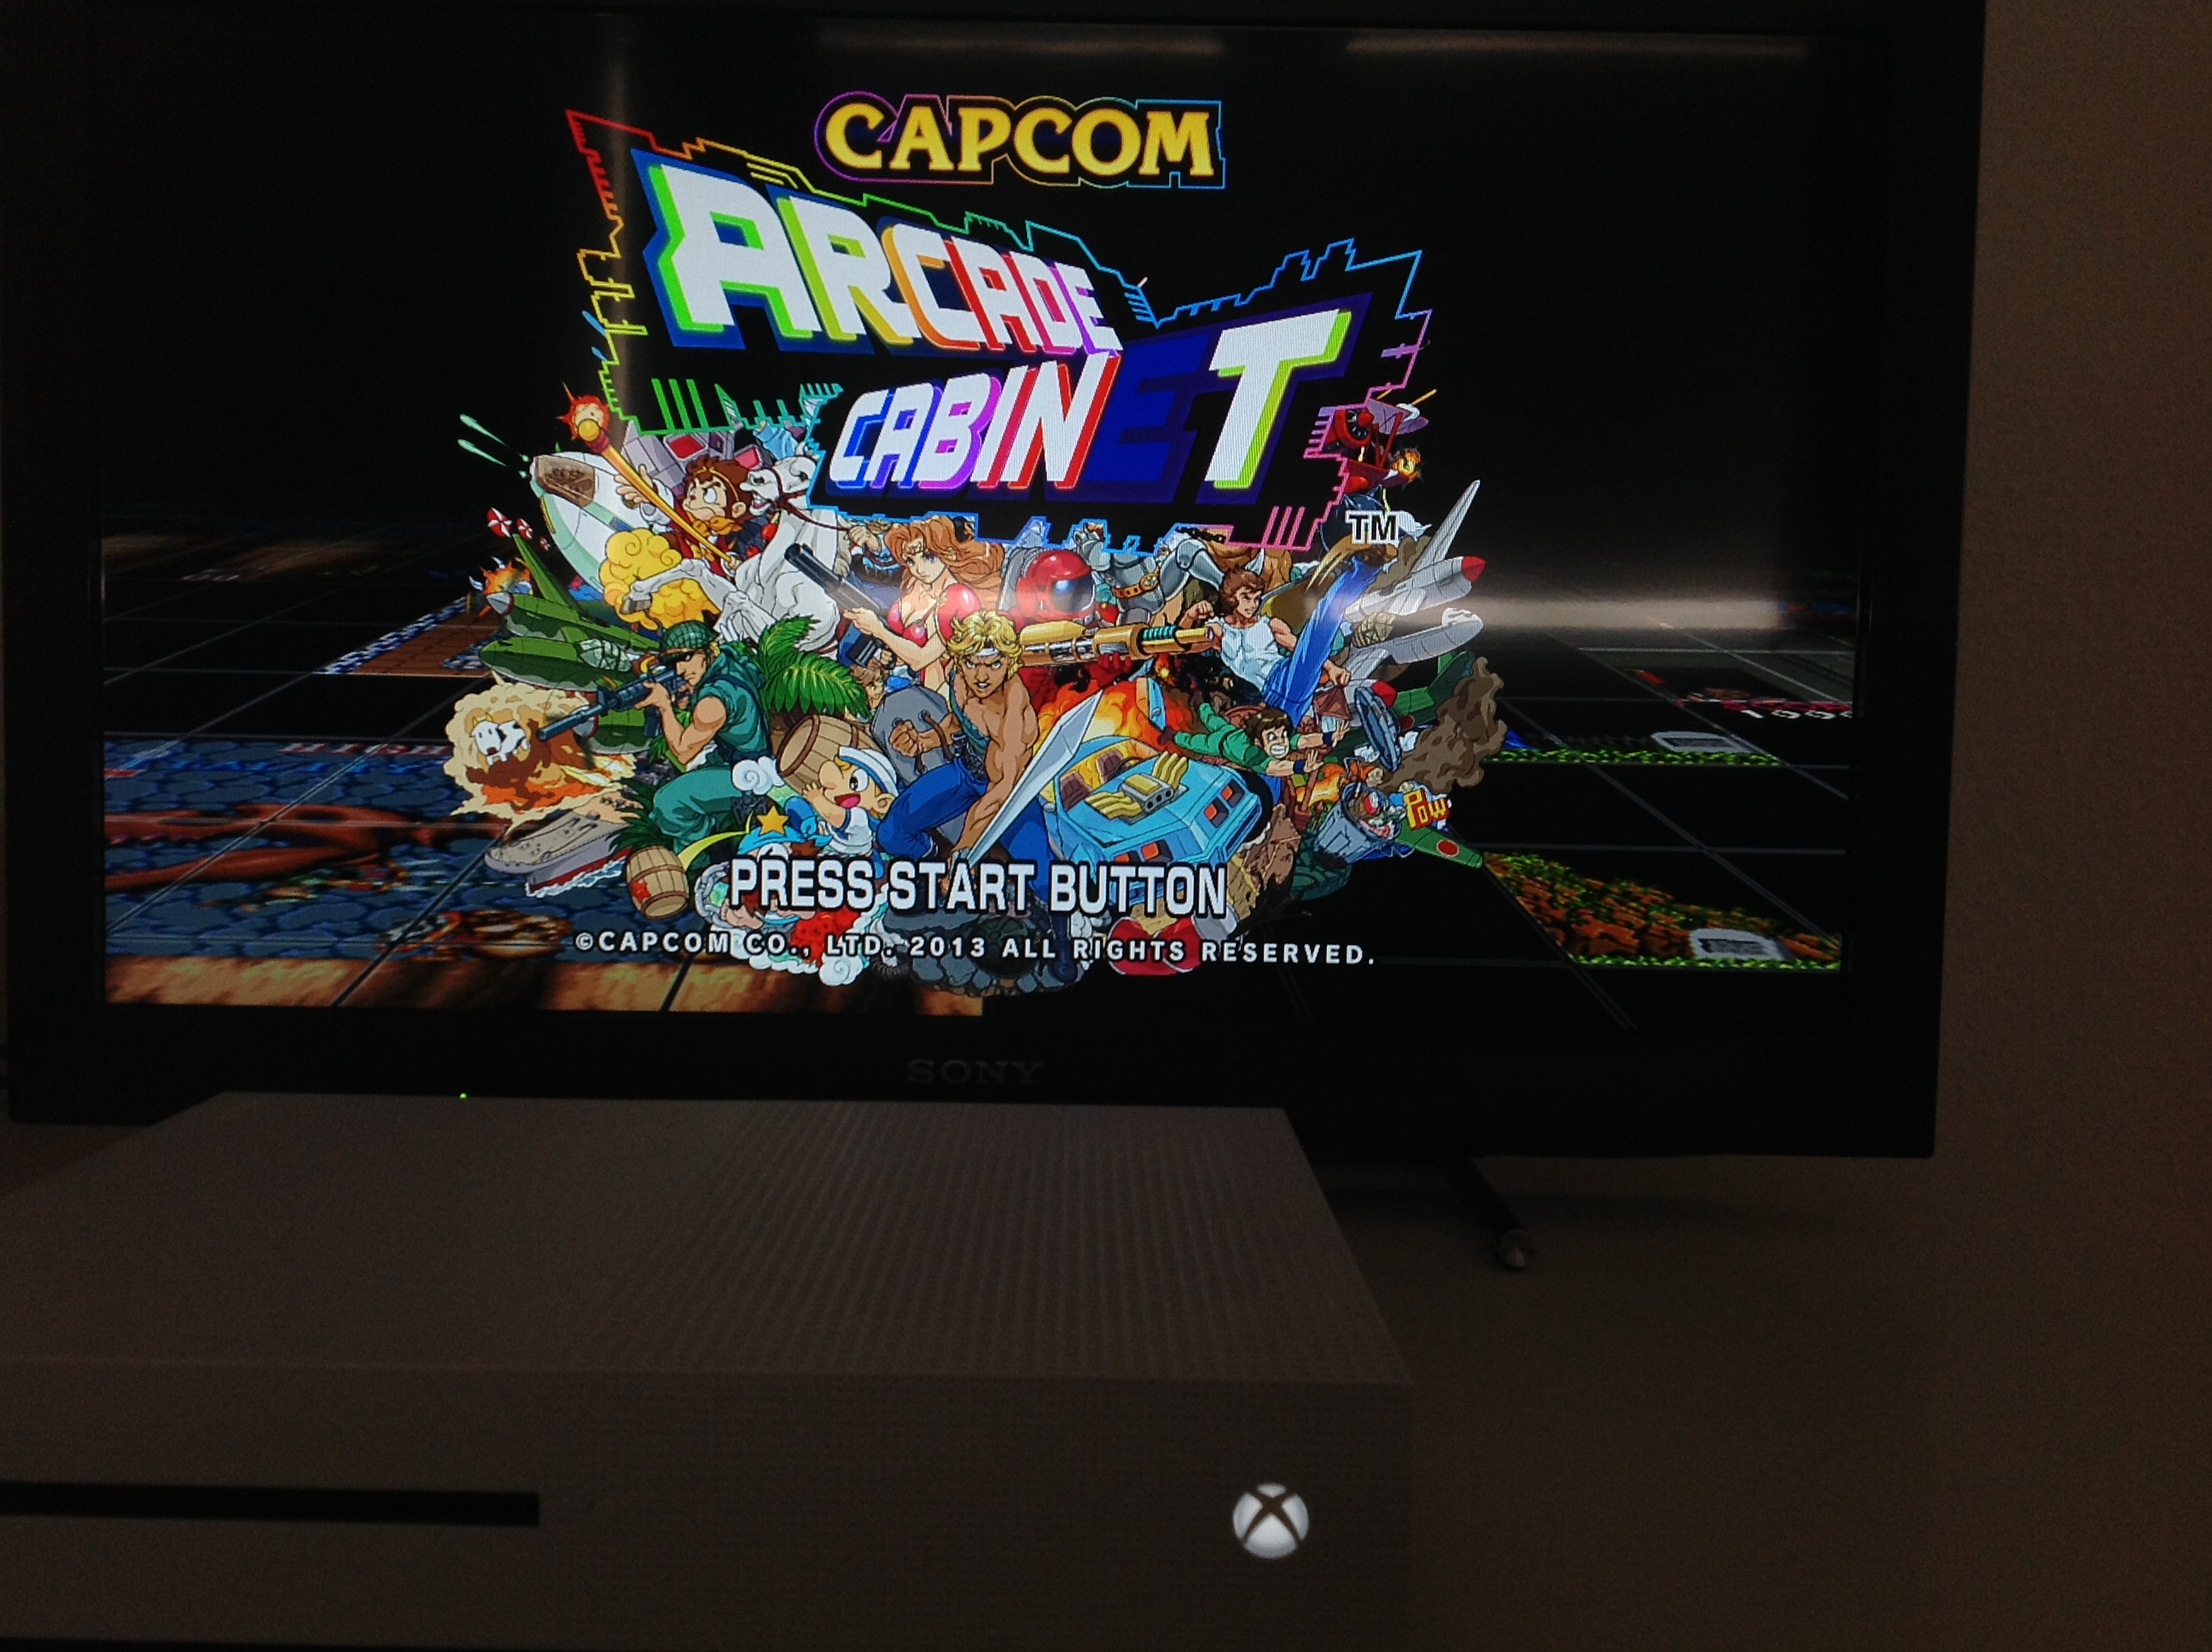 CoCoForest: Capcom Arcade Cabinet: SonSon (Xbox 360) 94,700 points on 2019-05-26 10:43:56